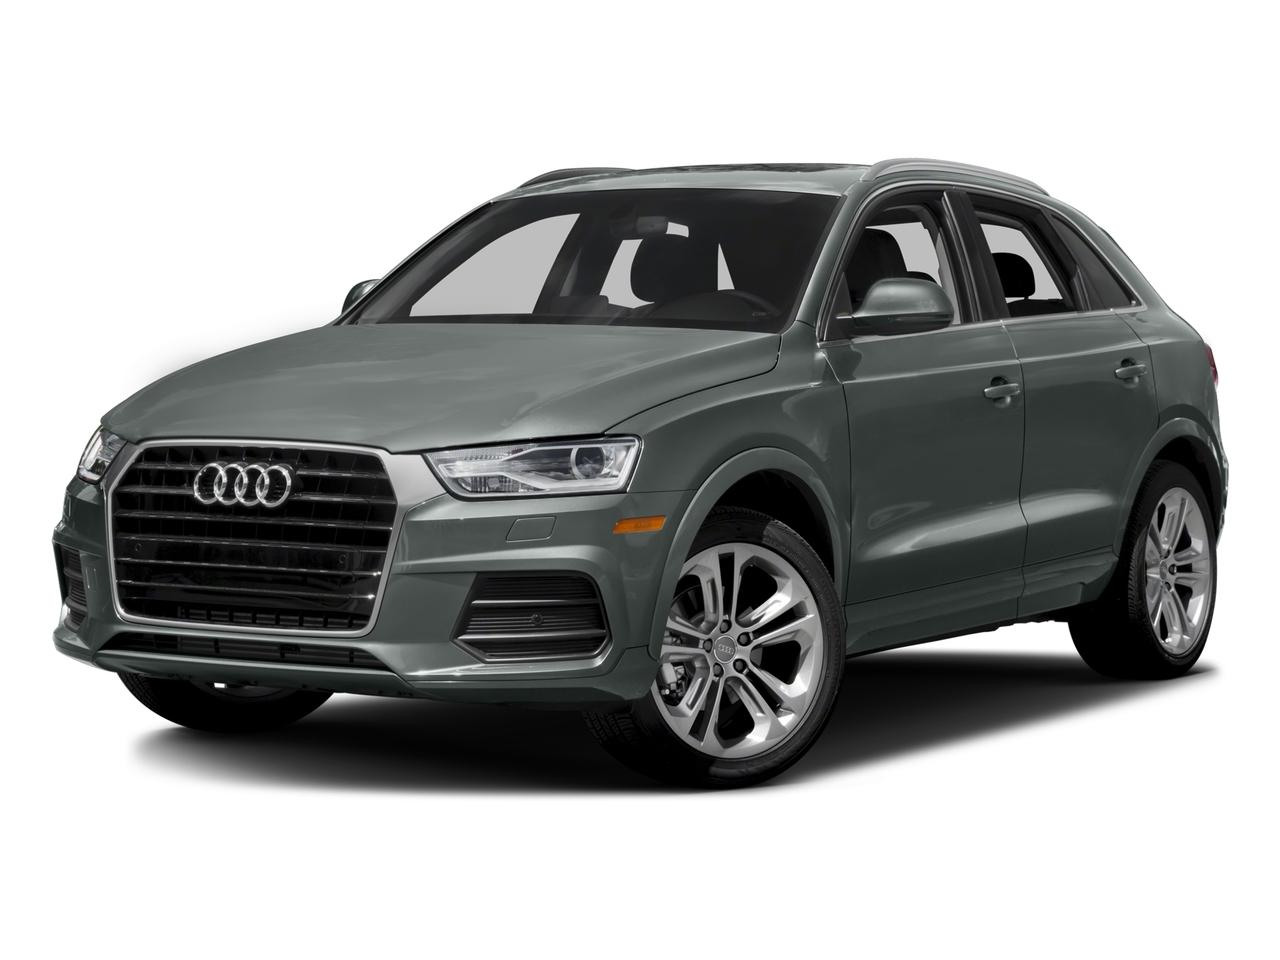 2016 Audi Q3 Vehicle Photo in Rockville, MD 20852